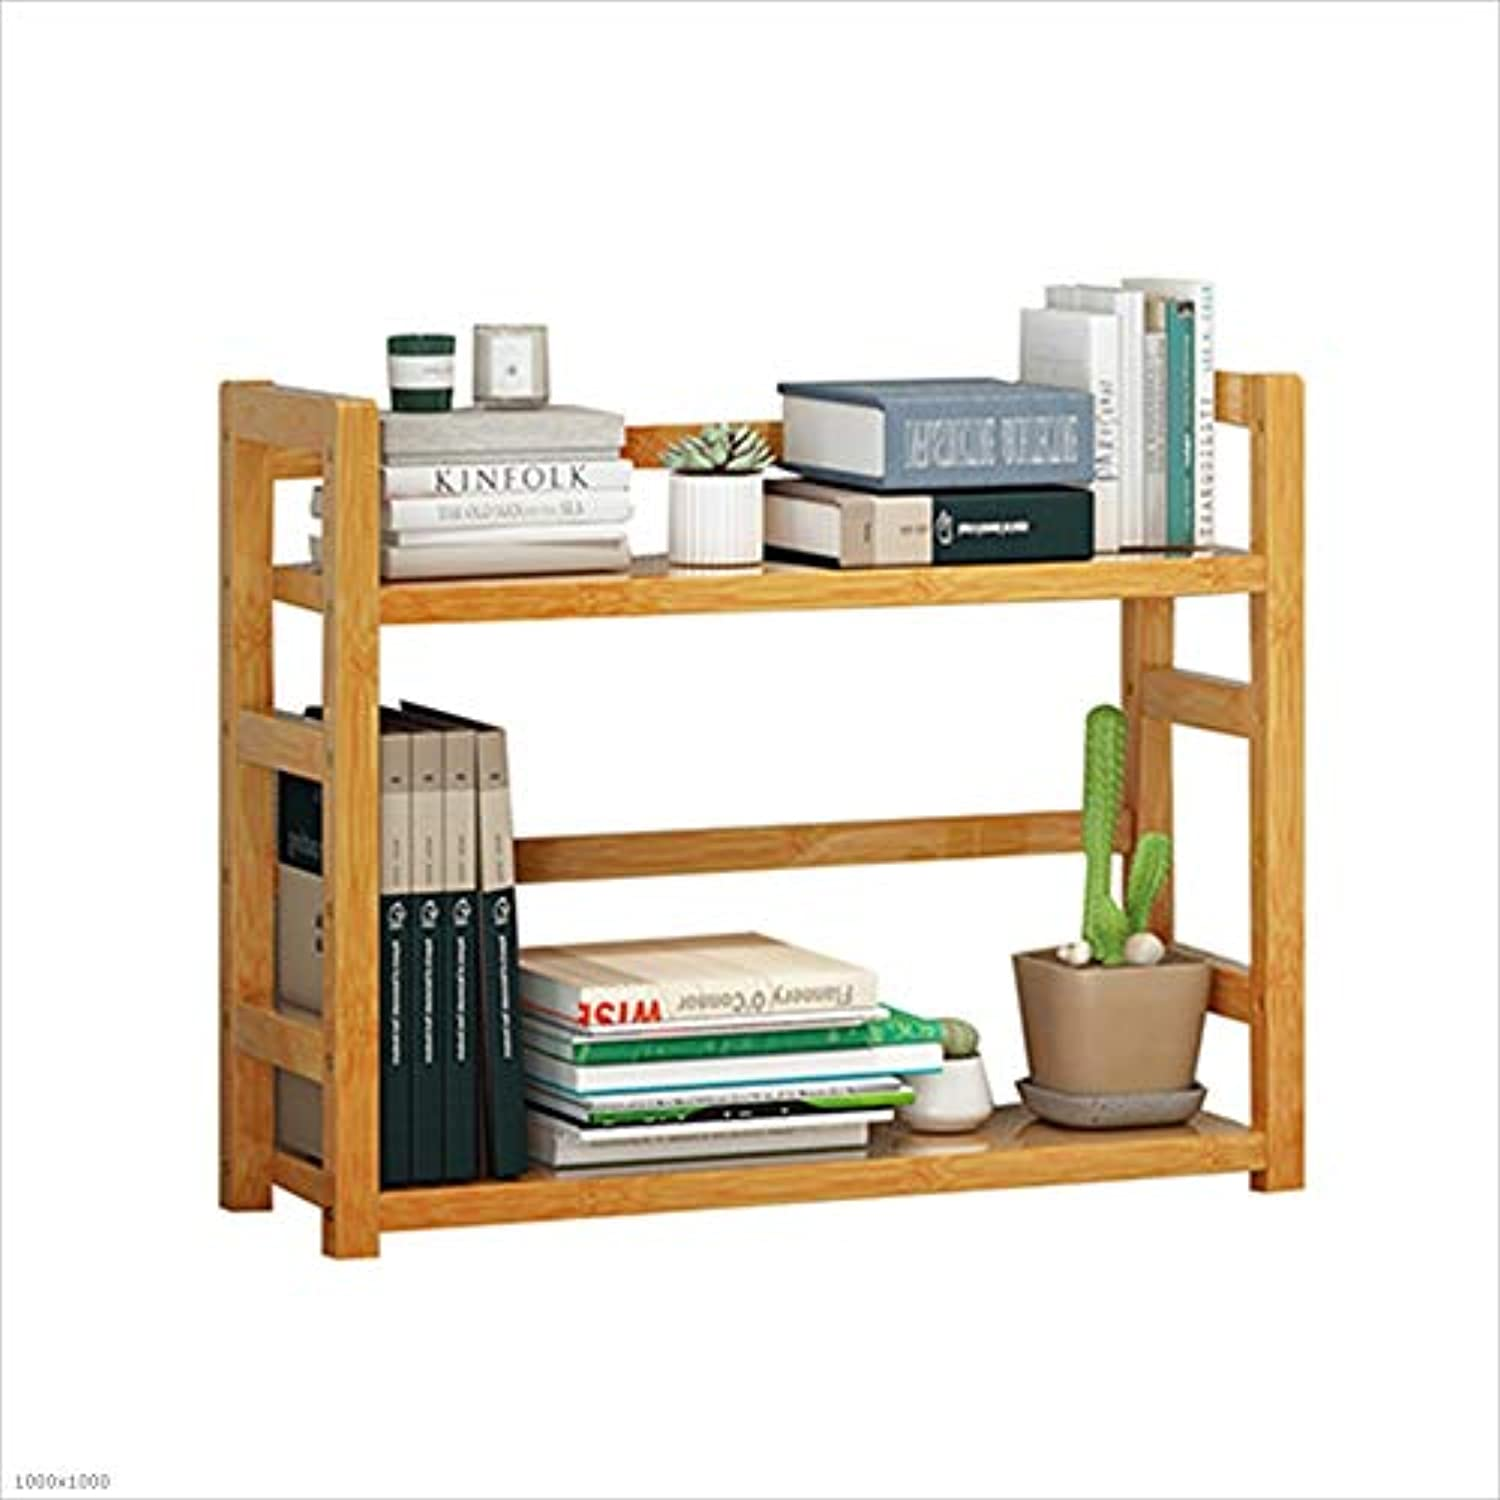 HUO Simple Table Small Bookshelf Creative Rack Simple Modern Dormitory Storage Storage Rack Multi-Size Optional Bookcases (Size   36  43  18cm)